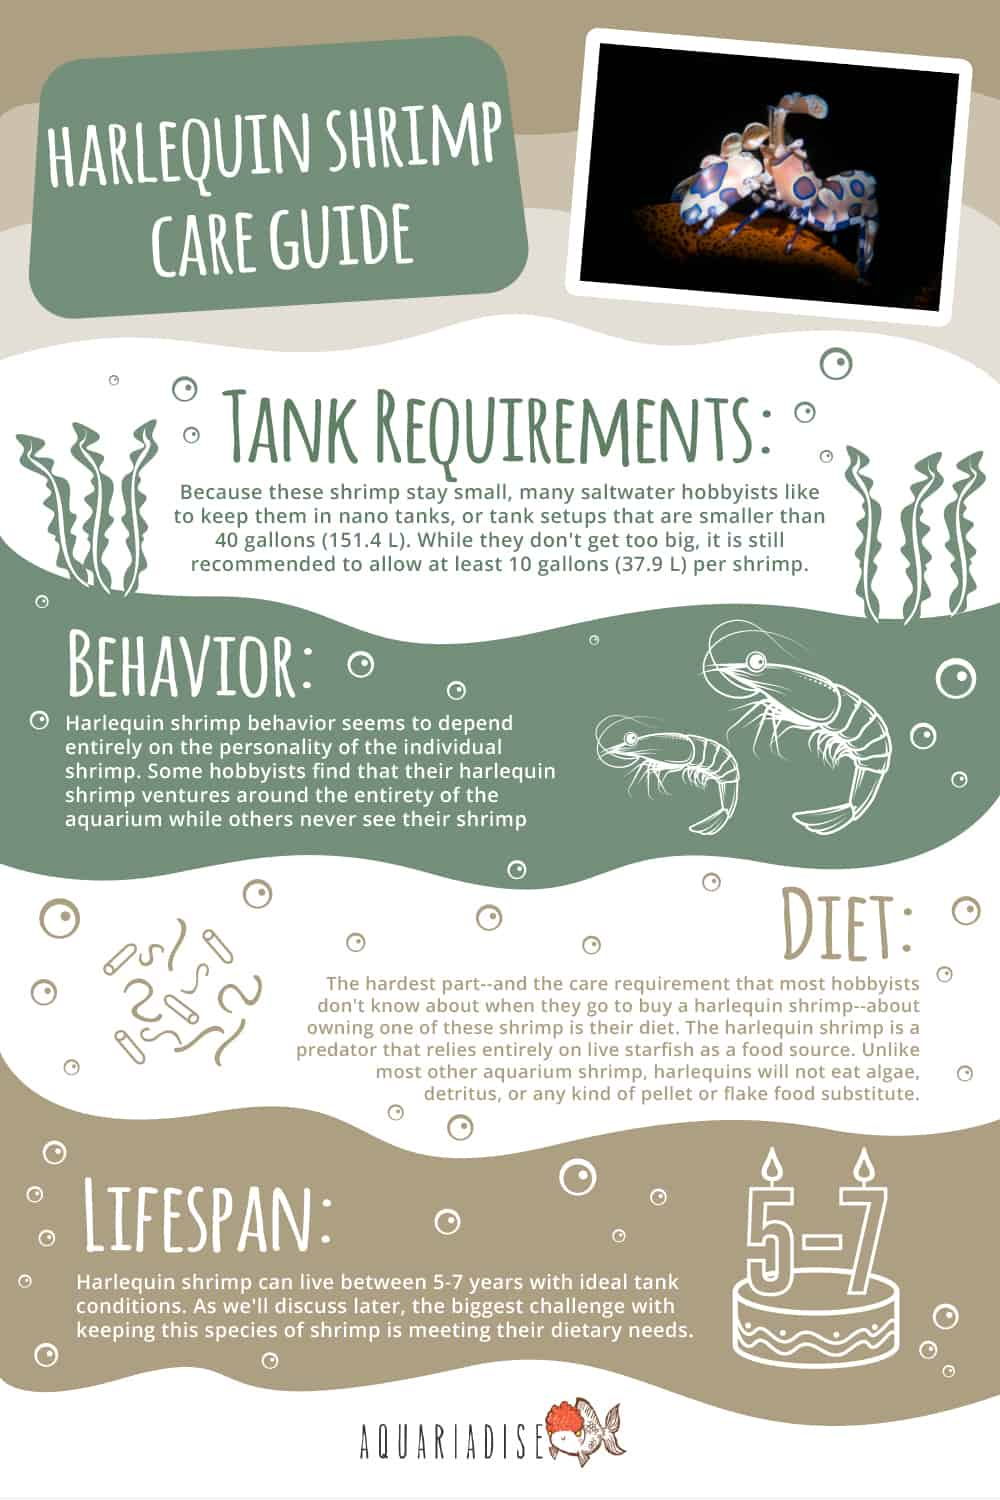 Harlequin Shrimp Care Guide Infographic